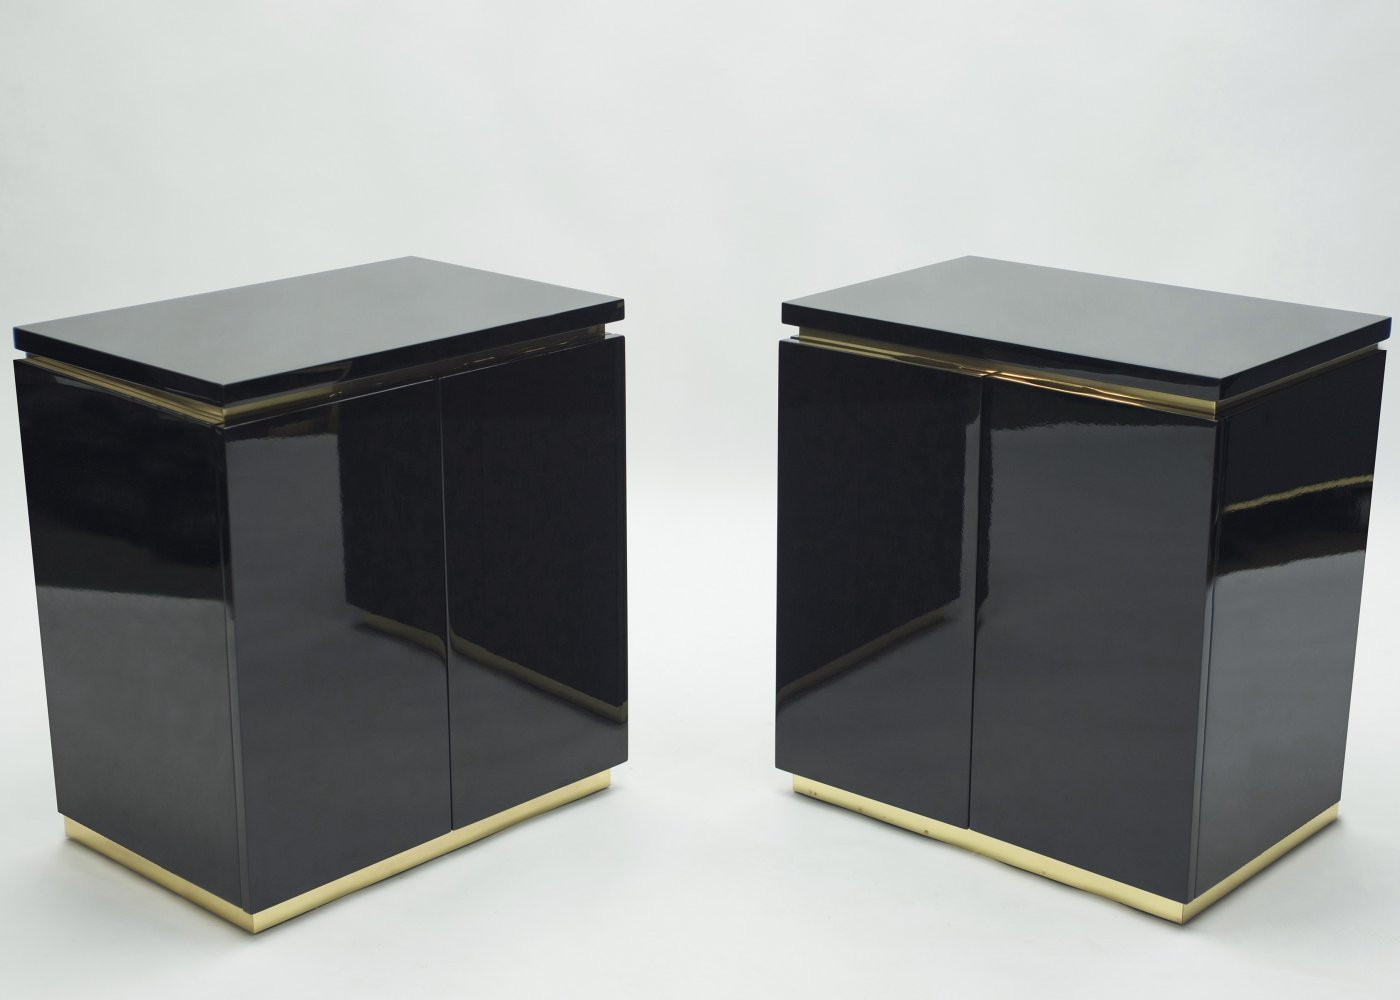 Pair of small black lacquer cabinets night stands by J.C. Mahey, 1970s